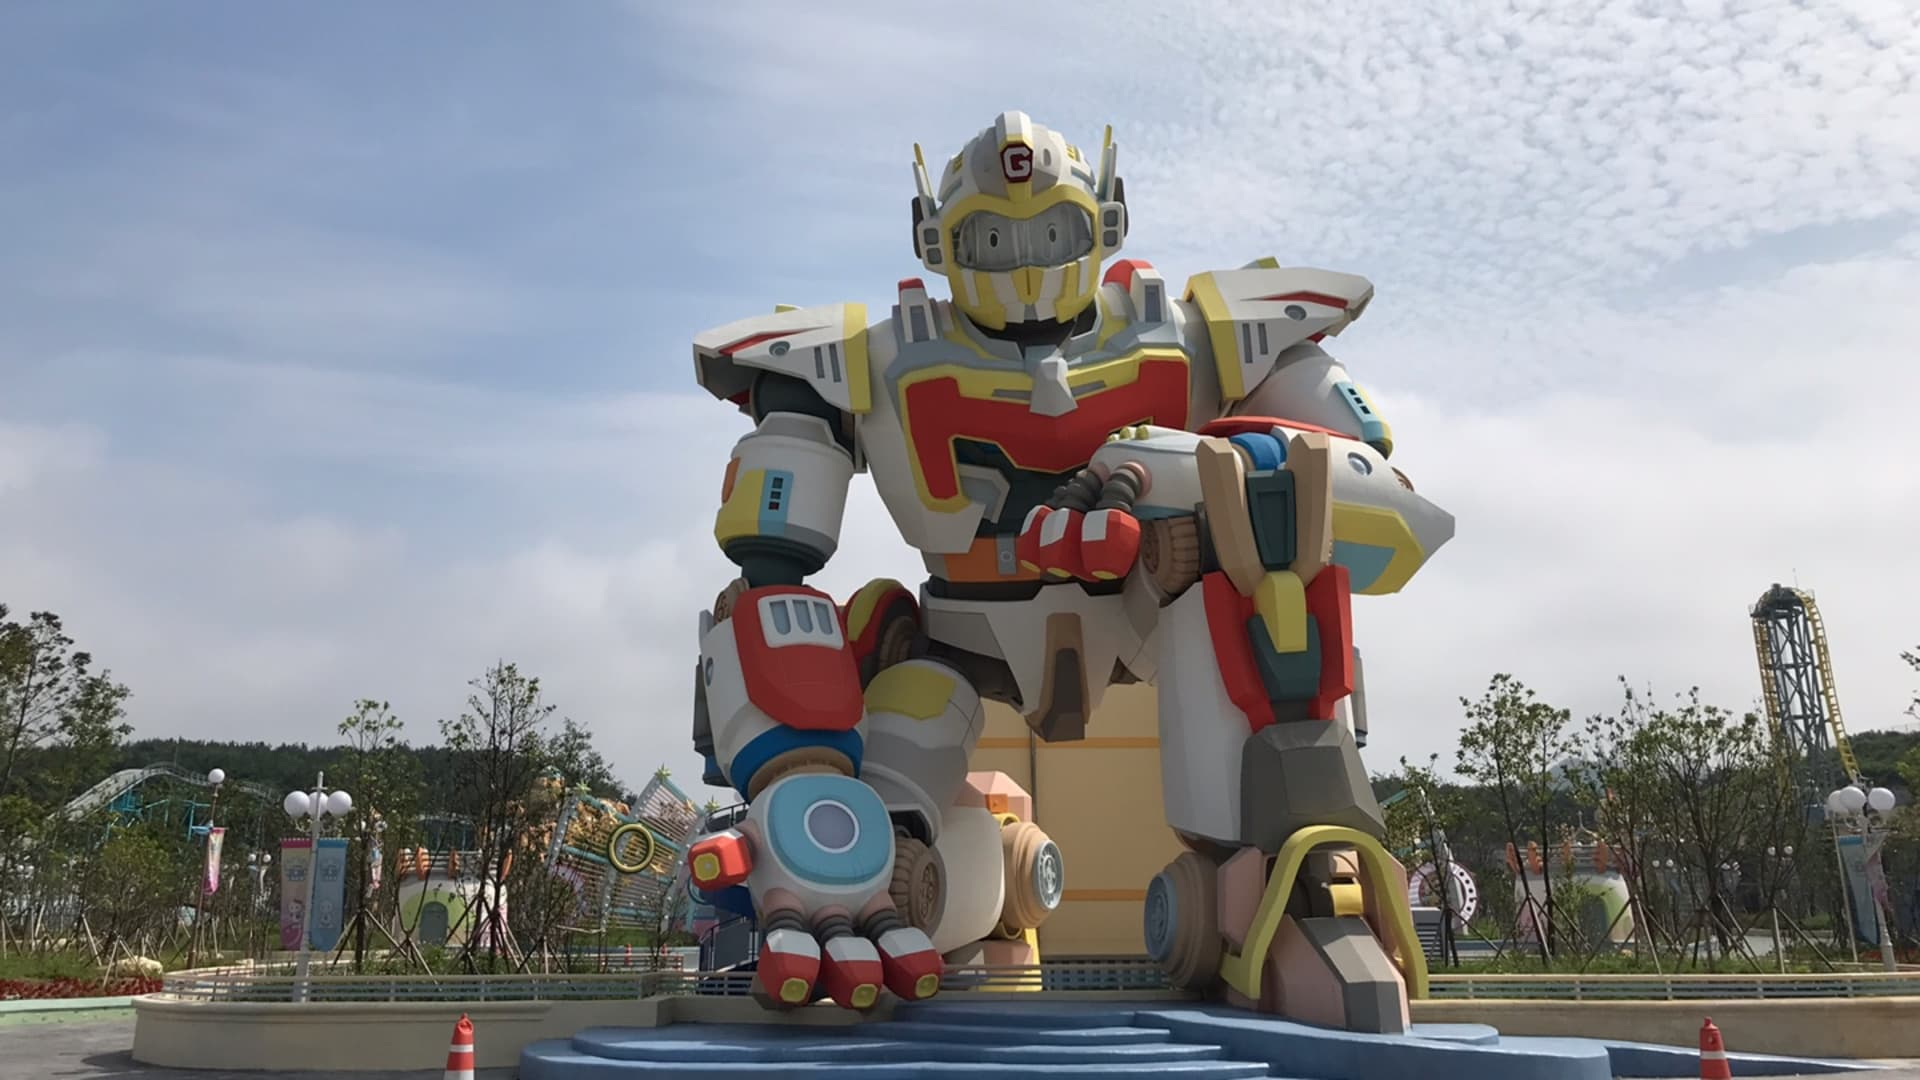 The entrance of Gyeongnam Masan Robot Land in South Korea.